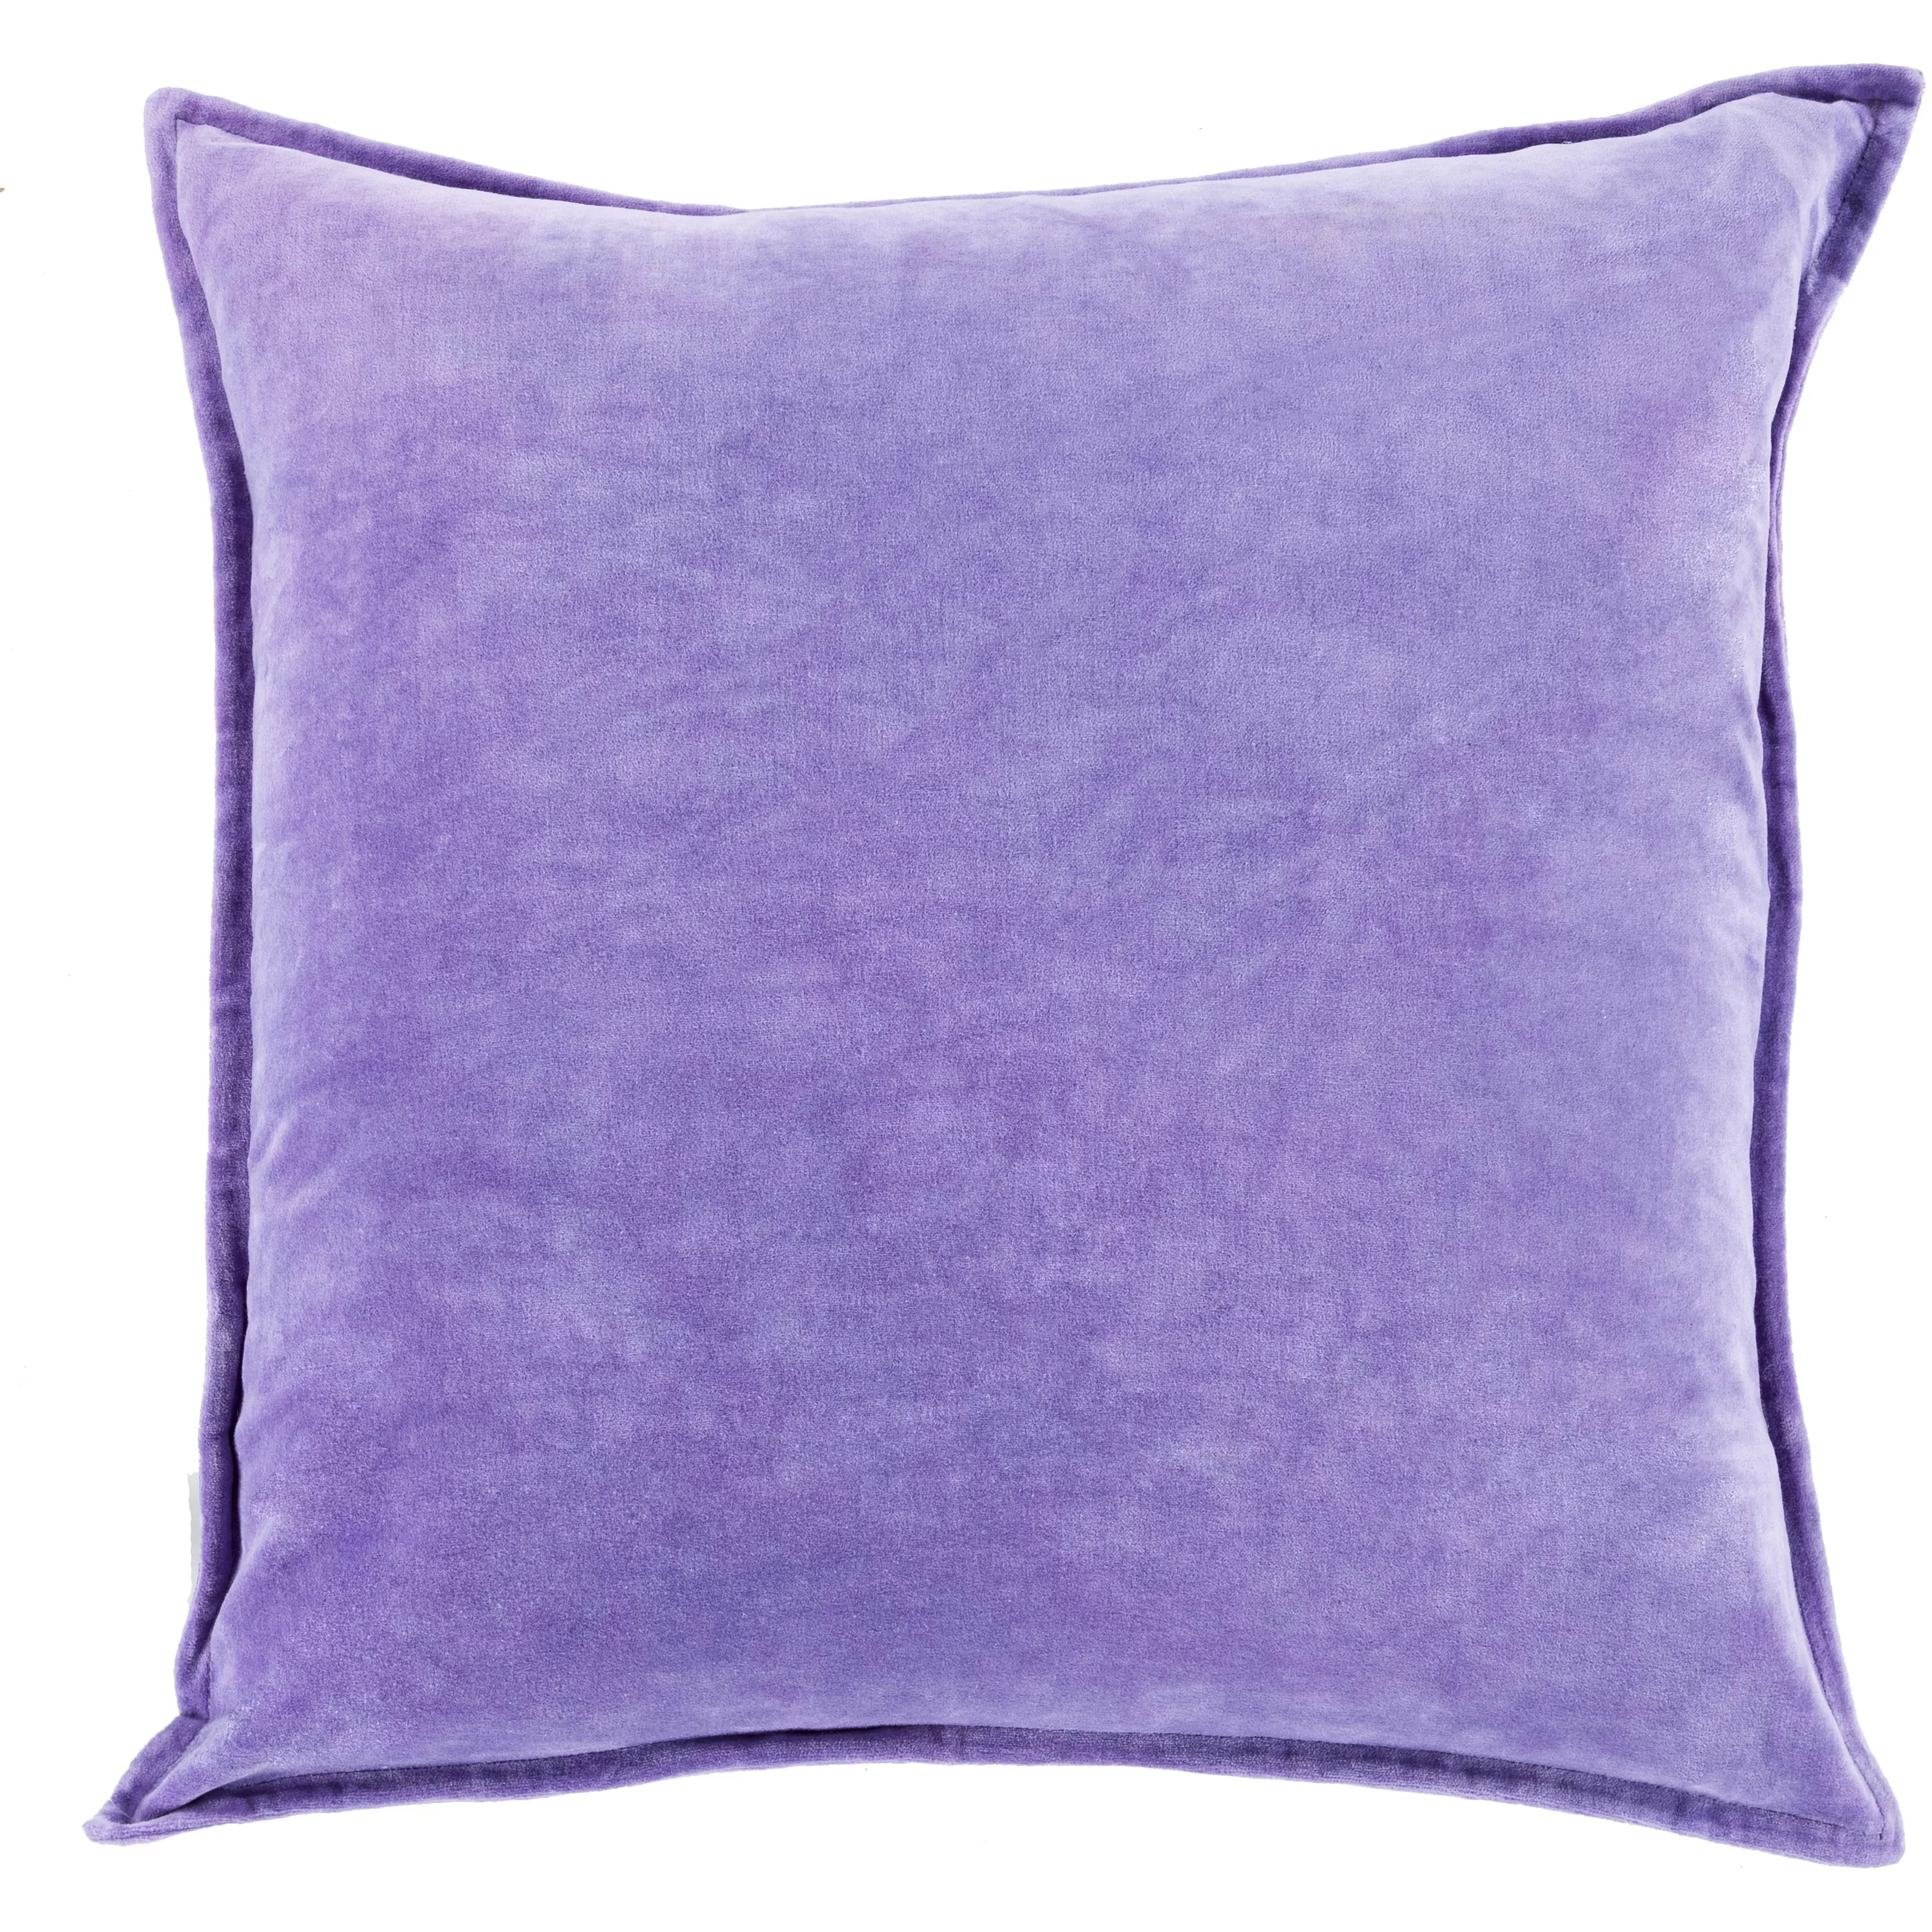 glam throw pillows you ll love in 2021